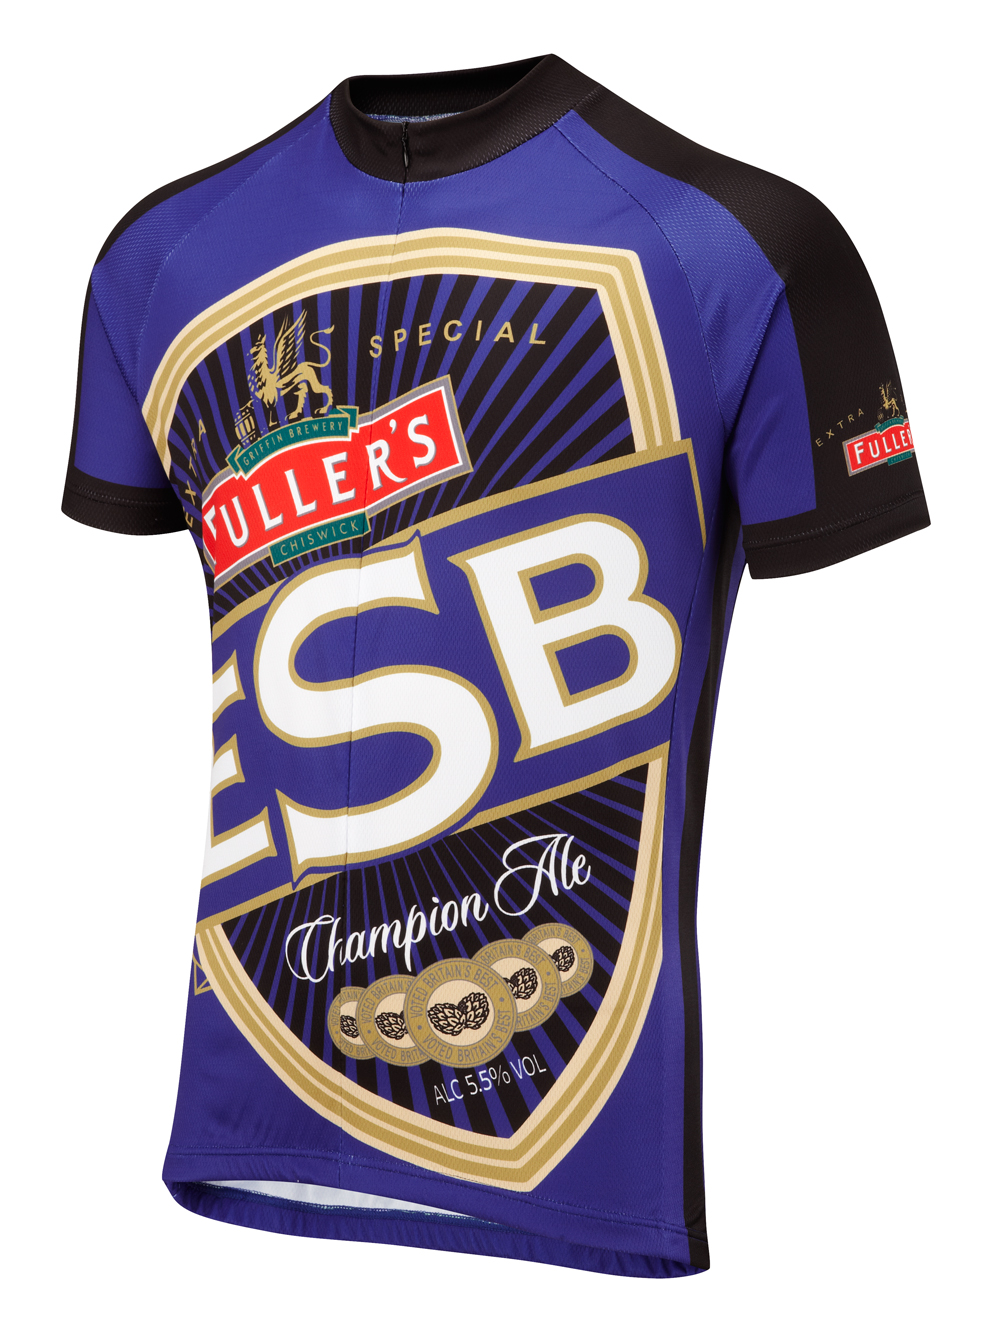 Womens Cycling Shirts